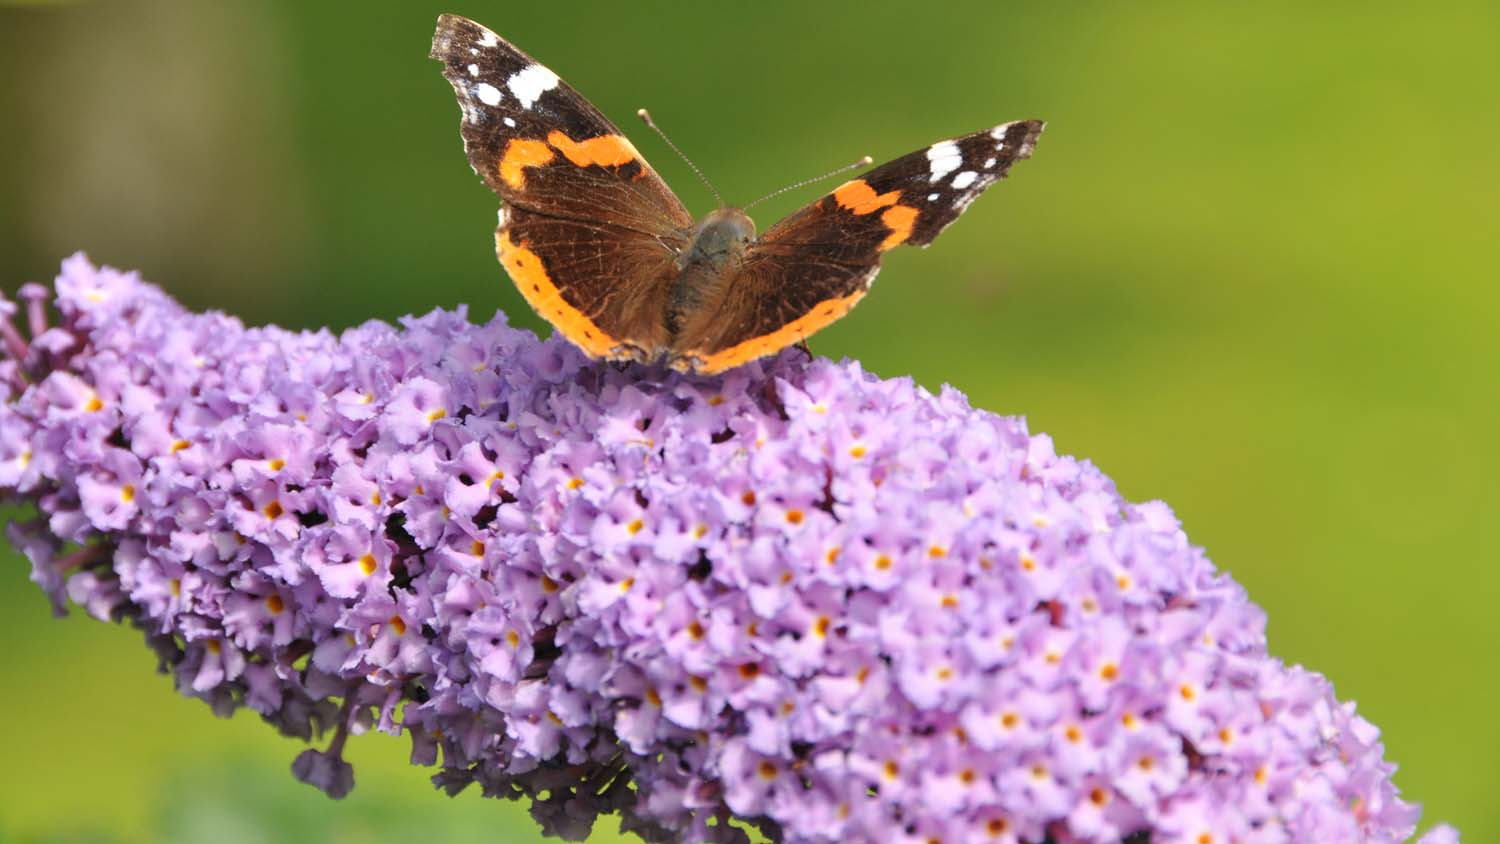 From the editor: Butterflies and flowers will not feed a growing population